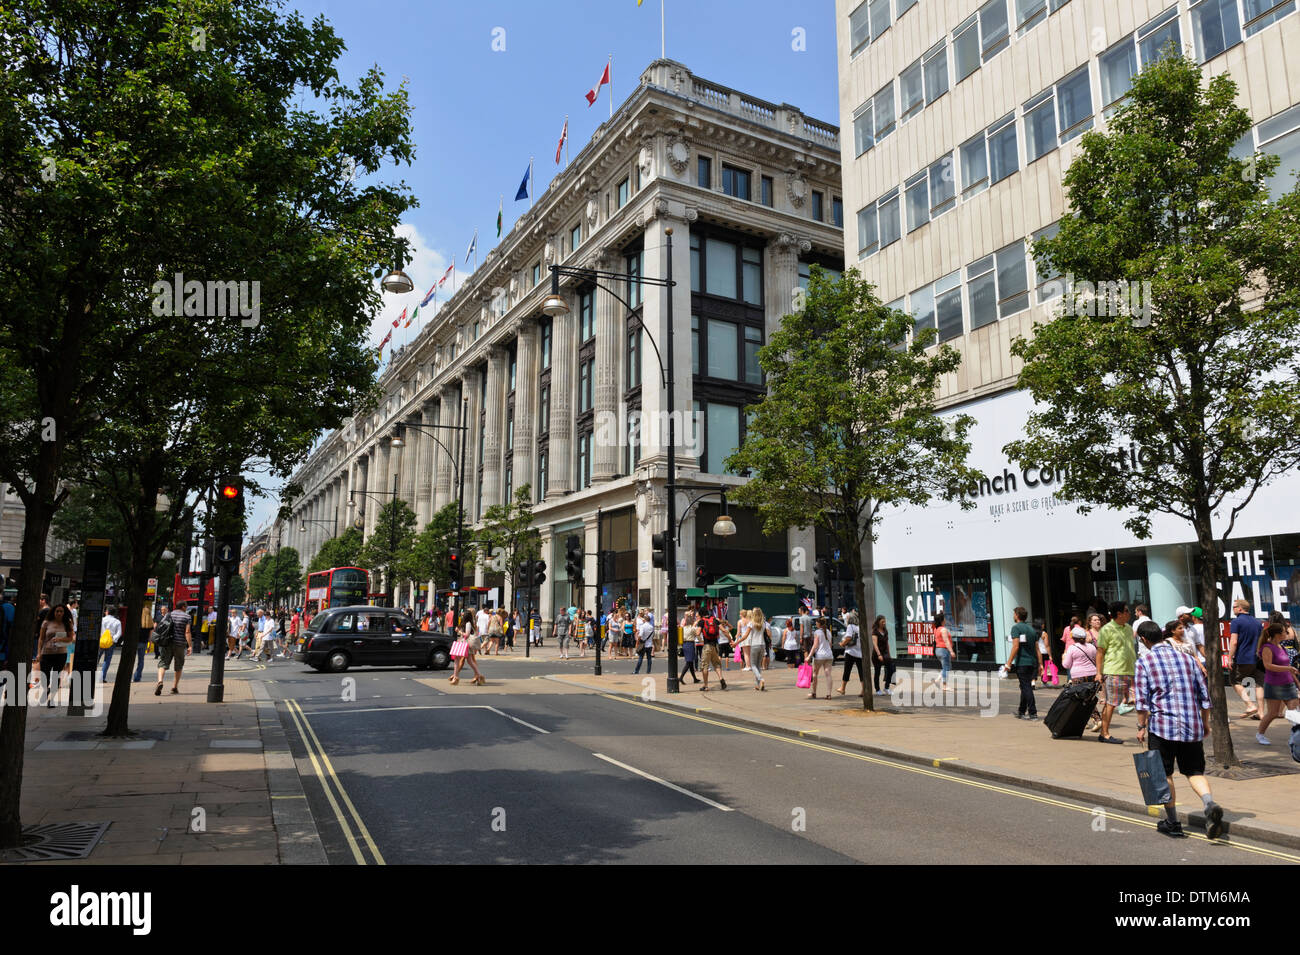 Selfridges building,one of the world famous department stores on Oxford Street, London, England, United Kingdom. - Stock Image